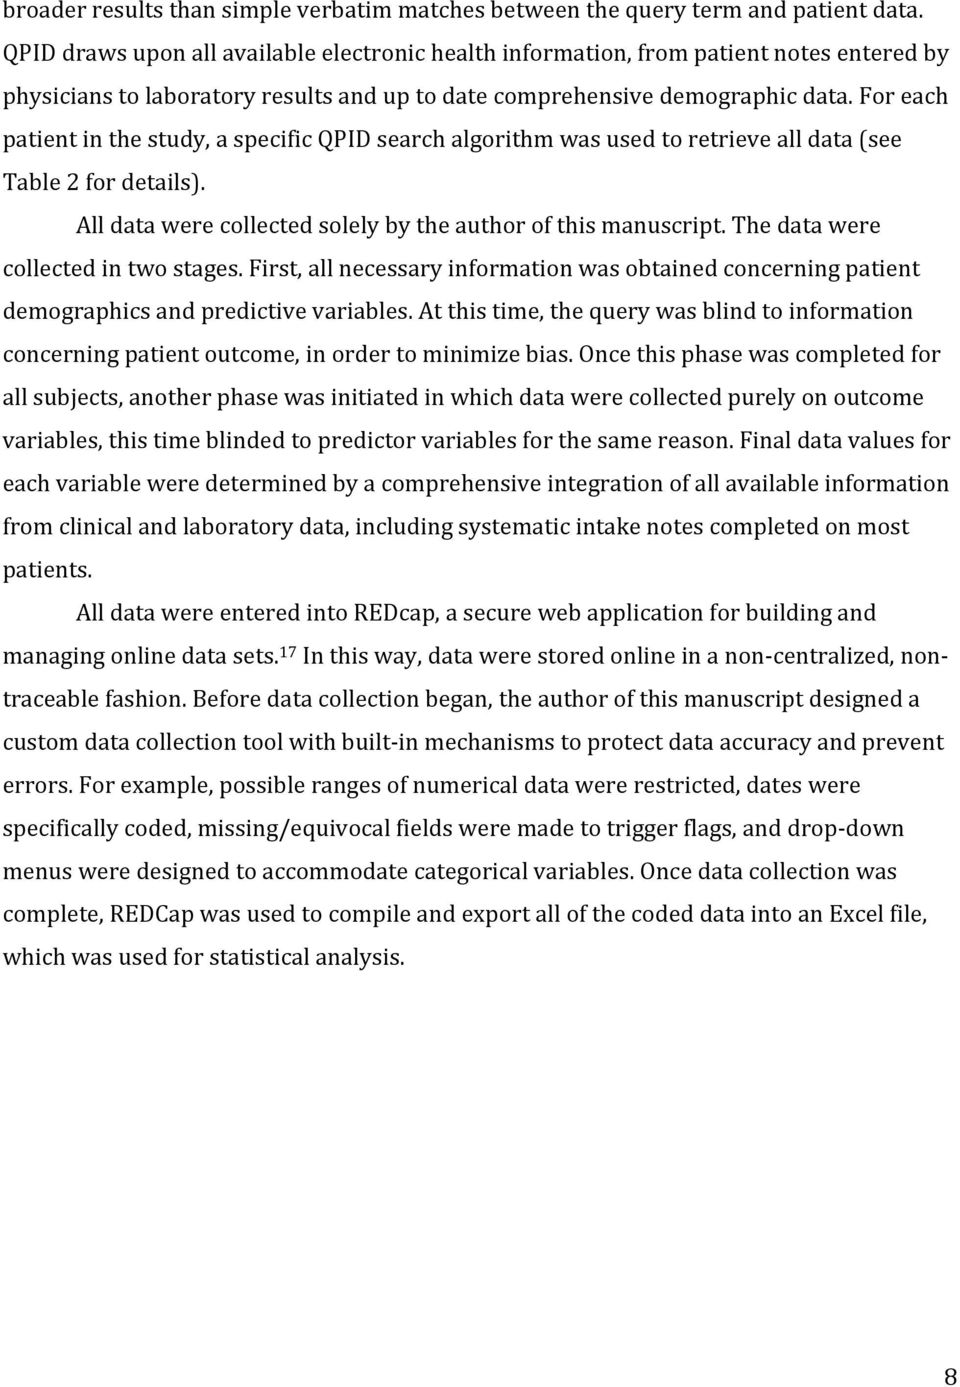 For each patient in the study, a specific QPID search algorithm was used to retrieve all data (see Table 2 for details). All data were collected solely by the author of this manuscript.